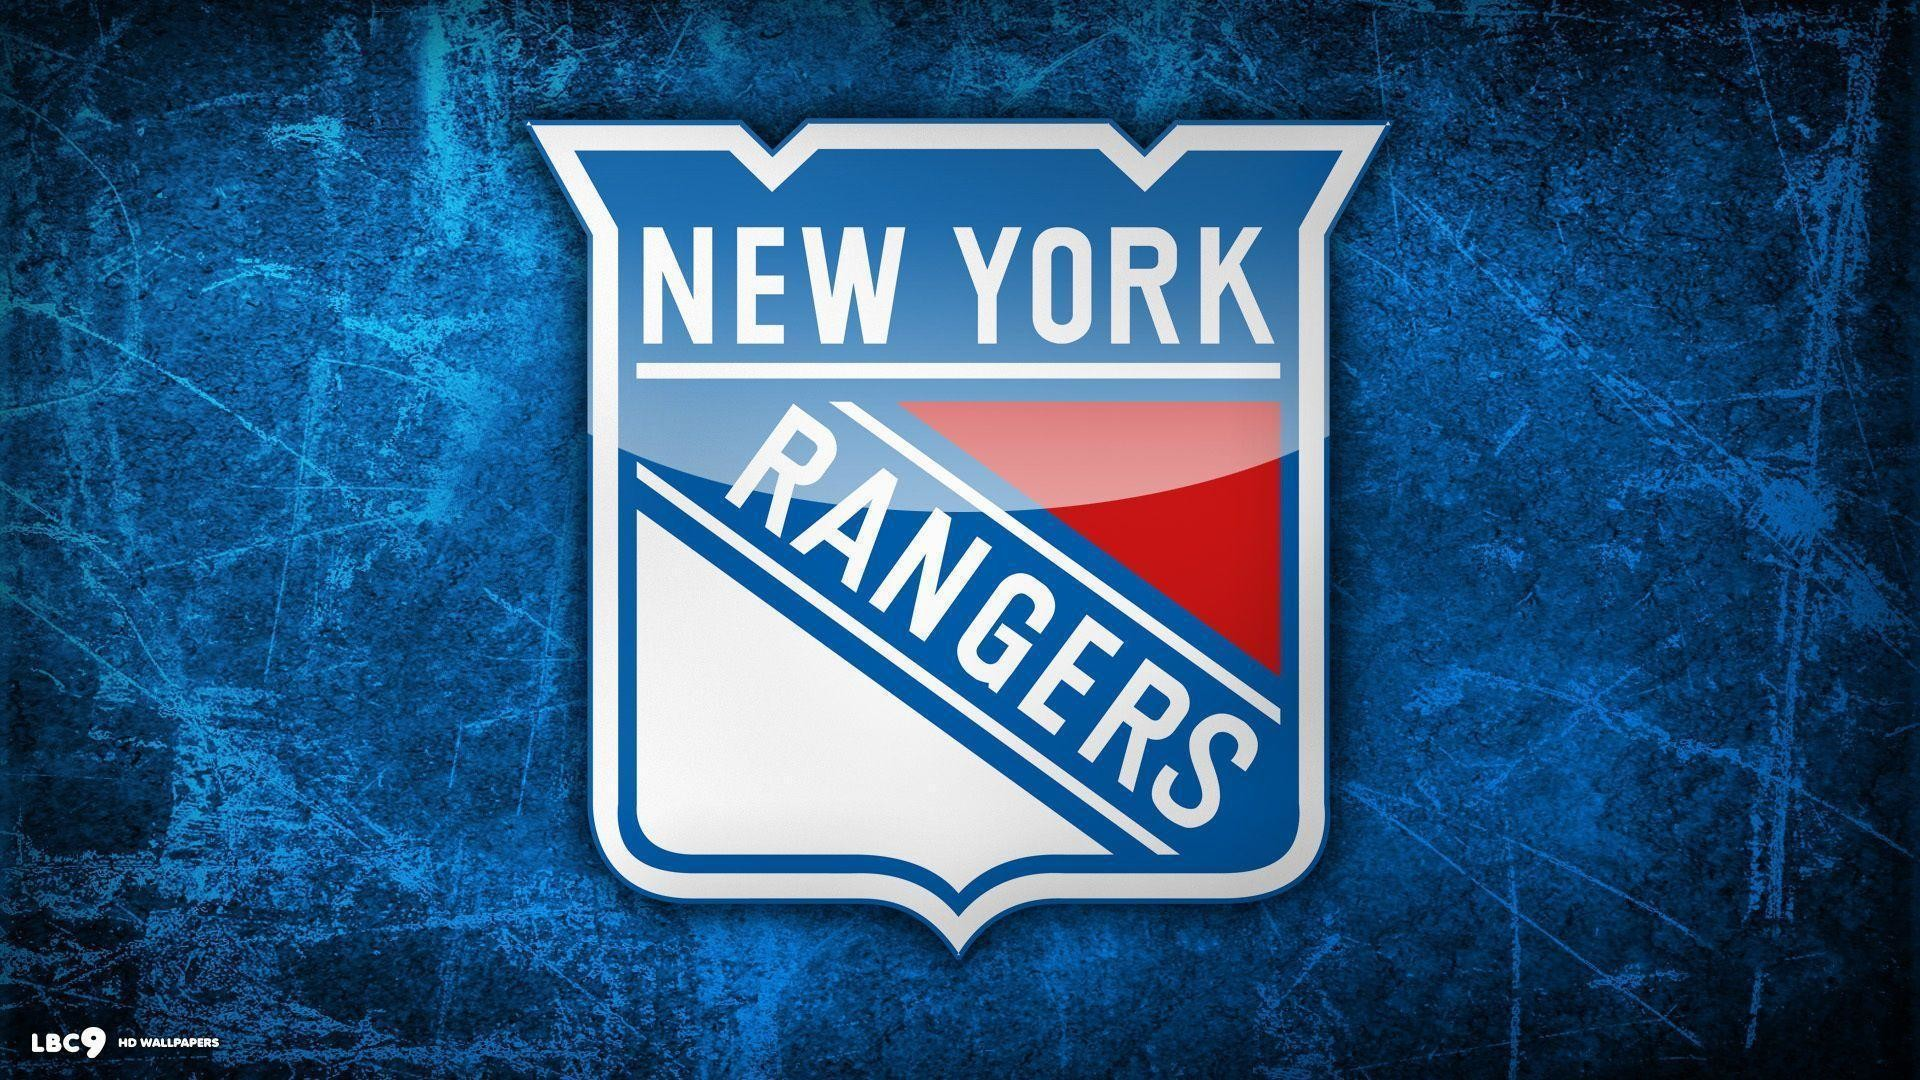 1920x1080 New York Rangers wallpapers | New York Rangers background